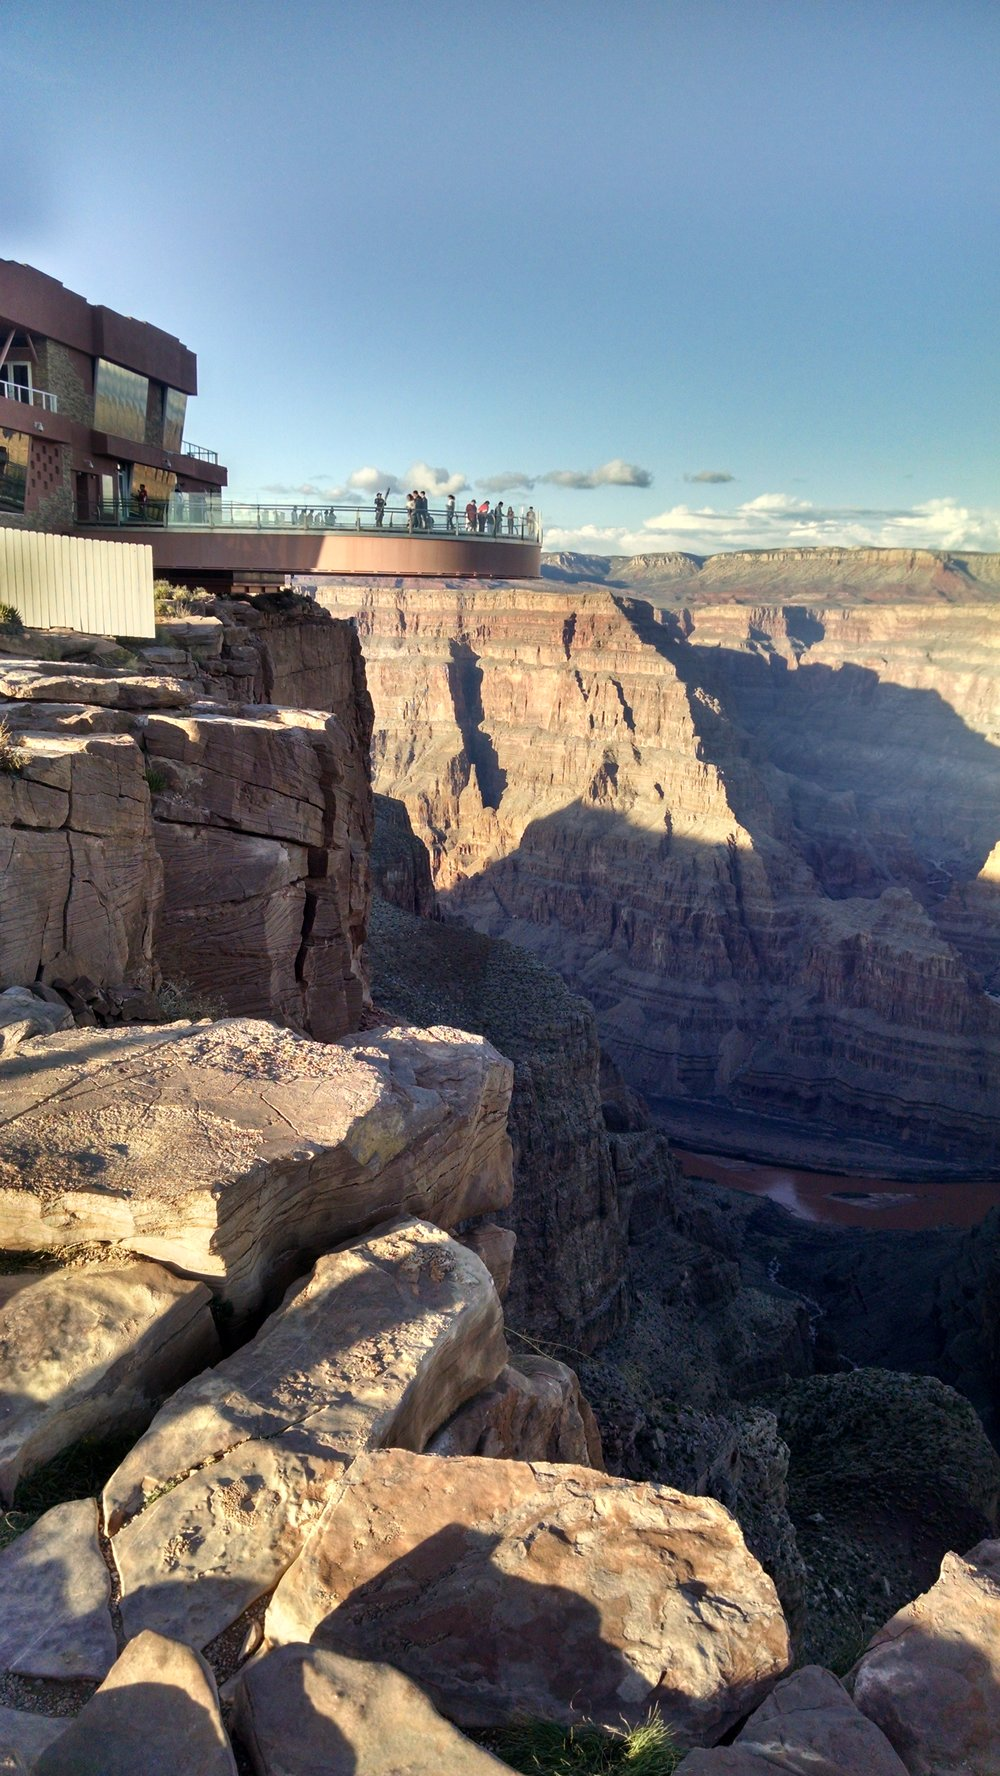 GRAND CANYON SKYWALK! Just a 2 1/2 hour car ride...